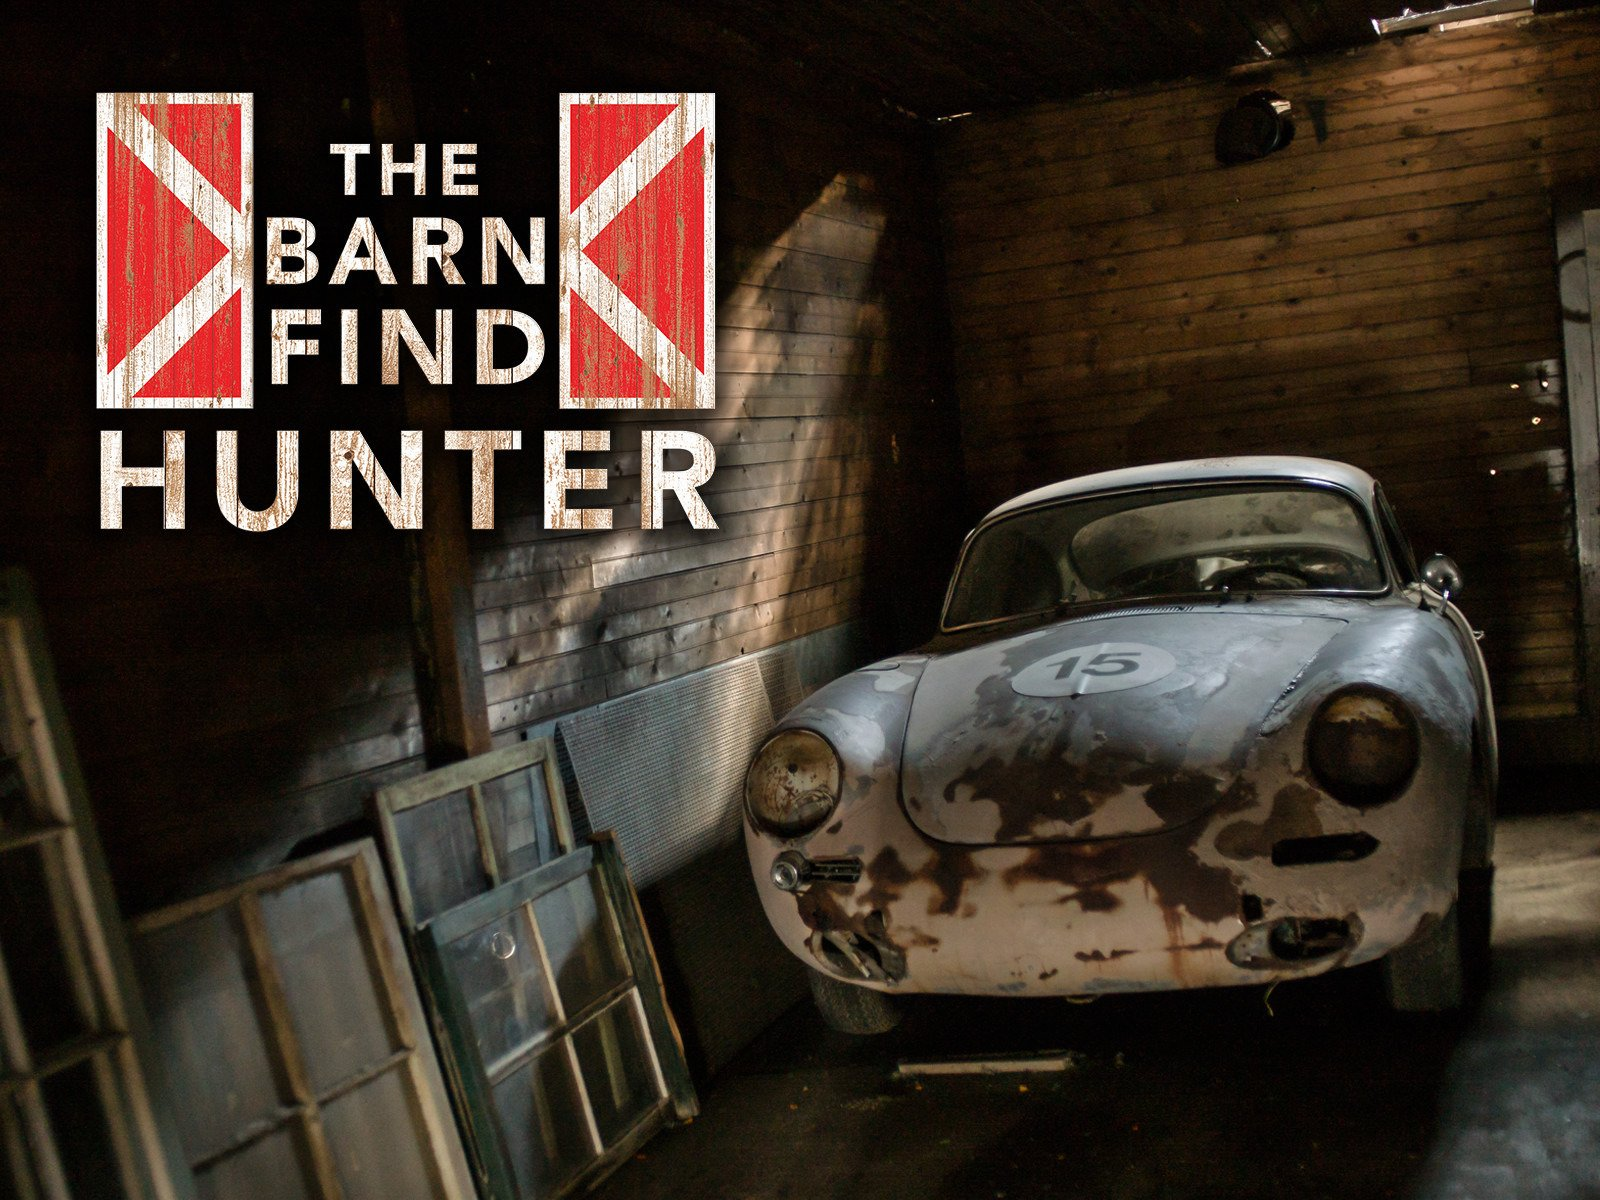 Amazon.com: Barn Find Hunter: Tom Cotter, Jordan Lewis, Ben ...